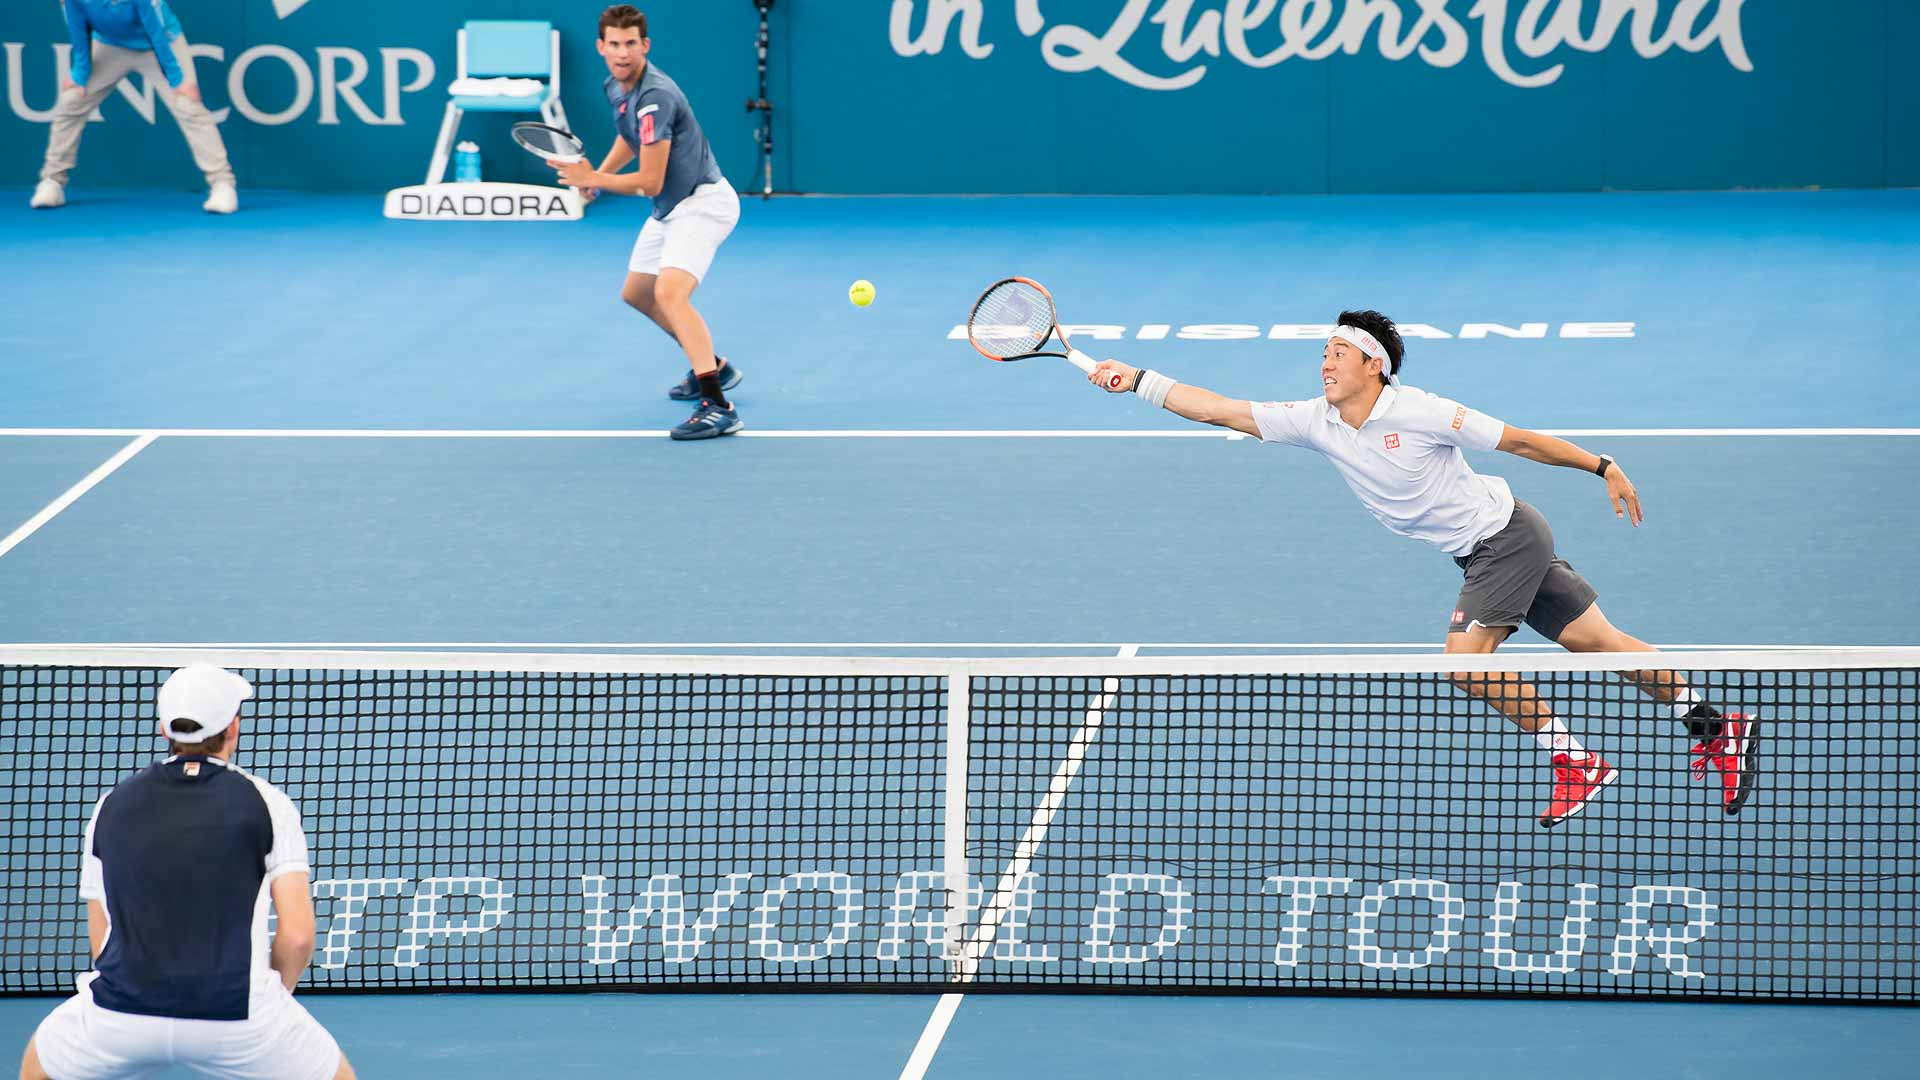 Dominic Thiem and Kei Nishikori pulled off an upset win in Brisbane.